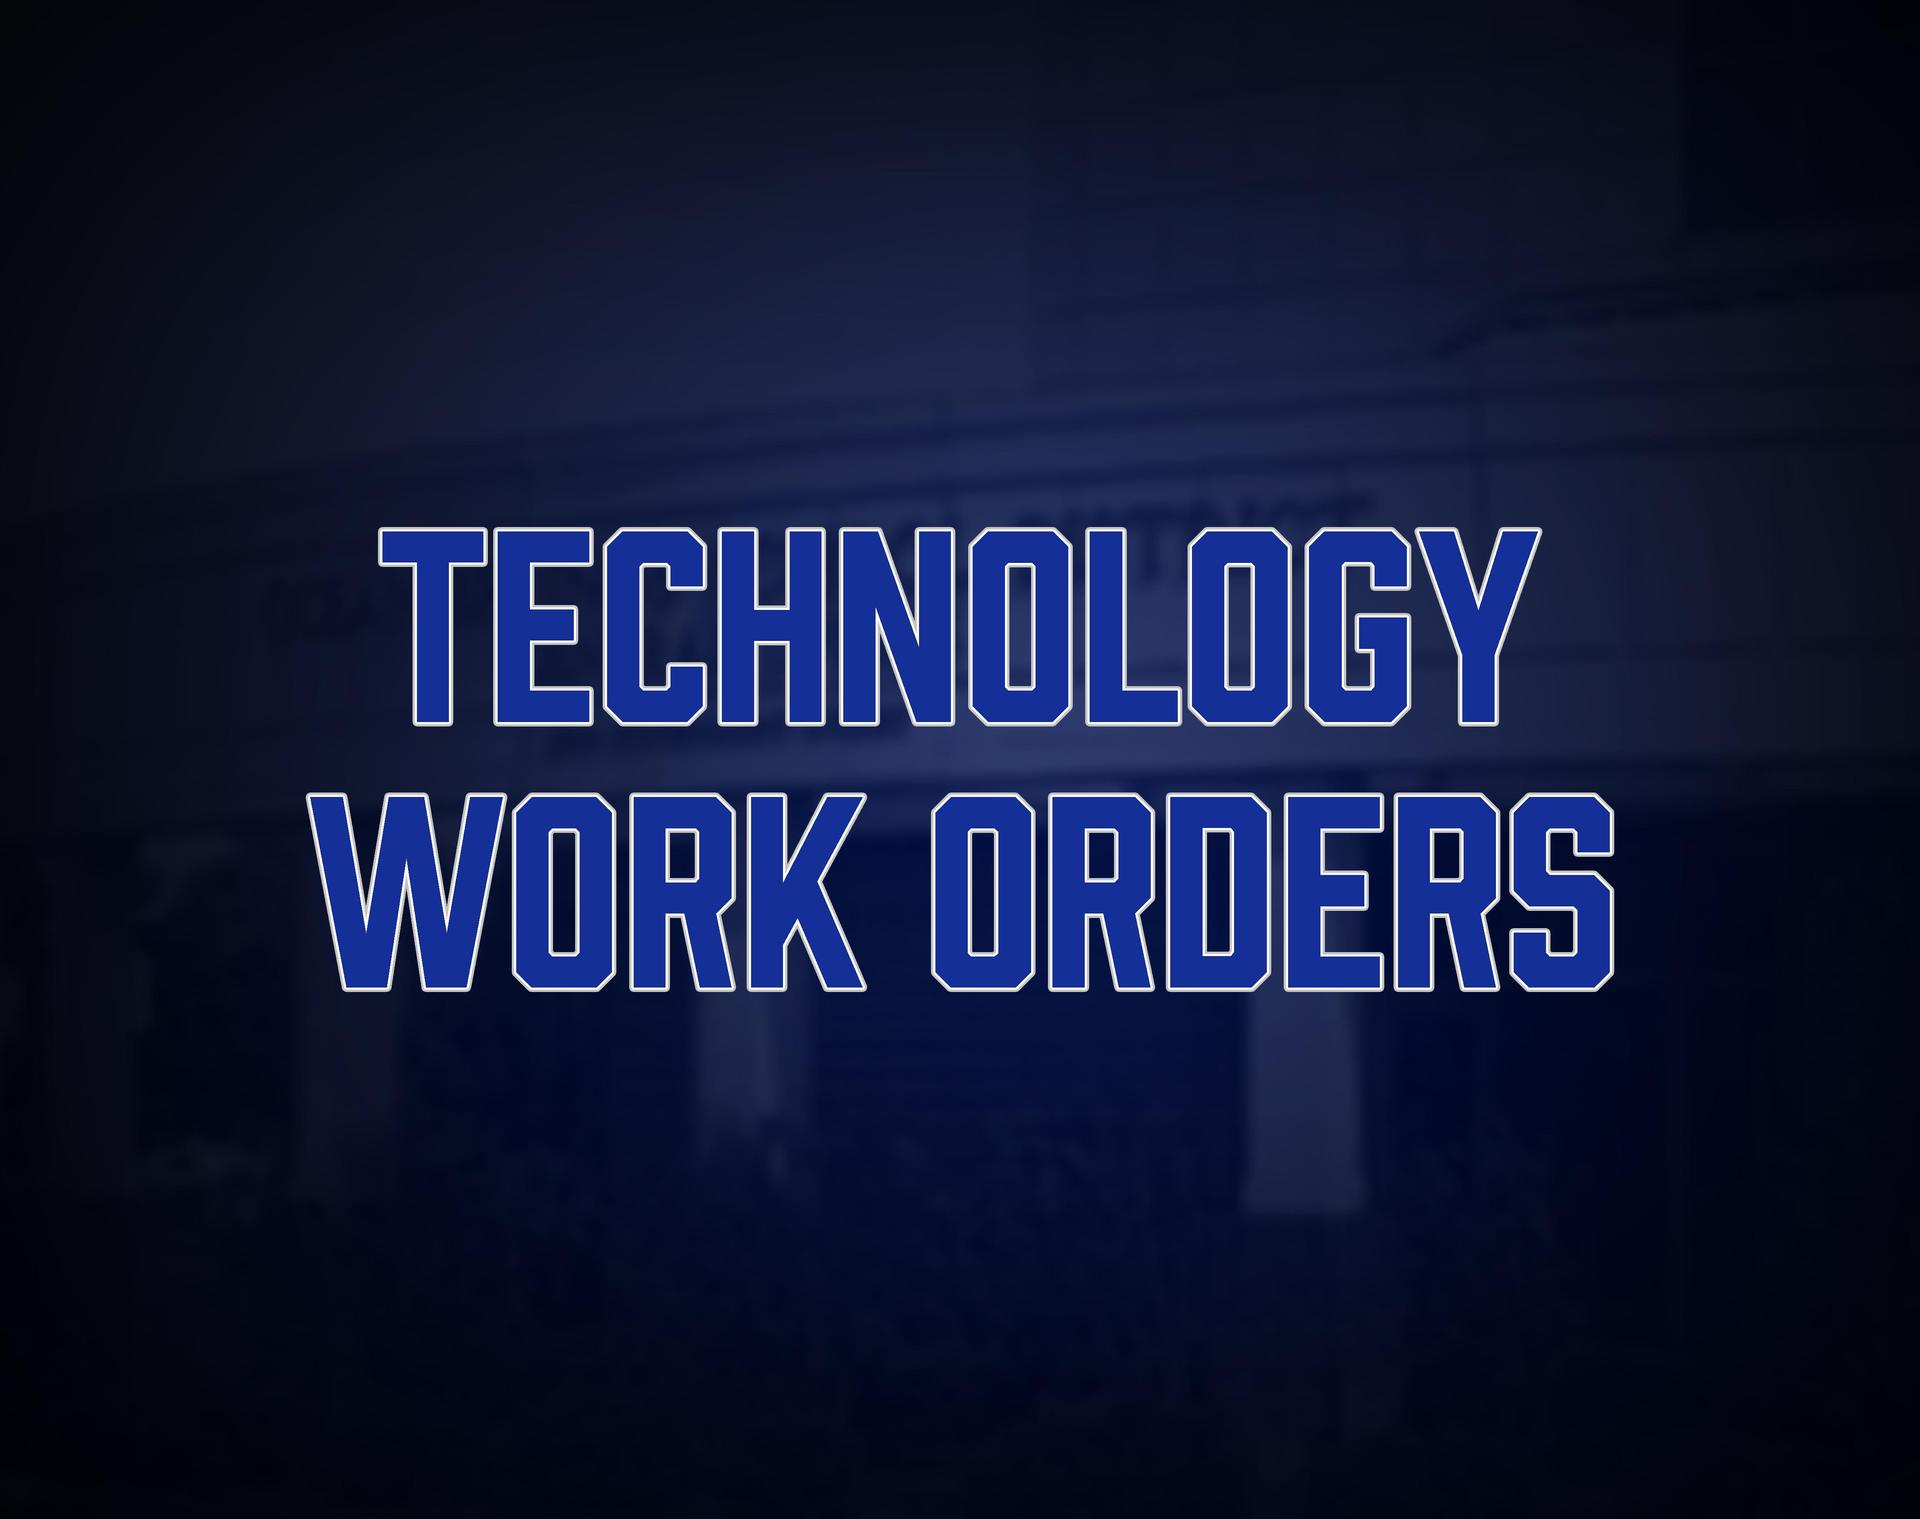 Technology Work Orders